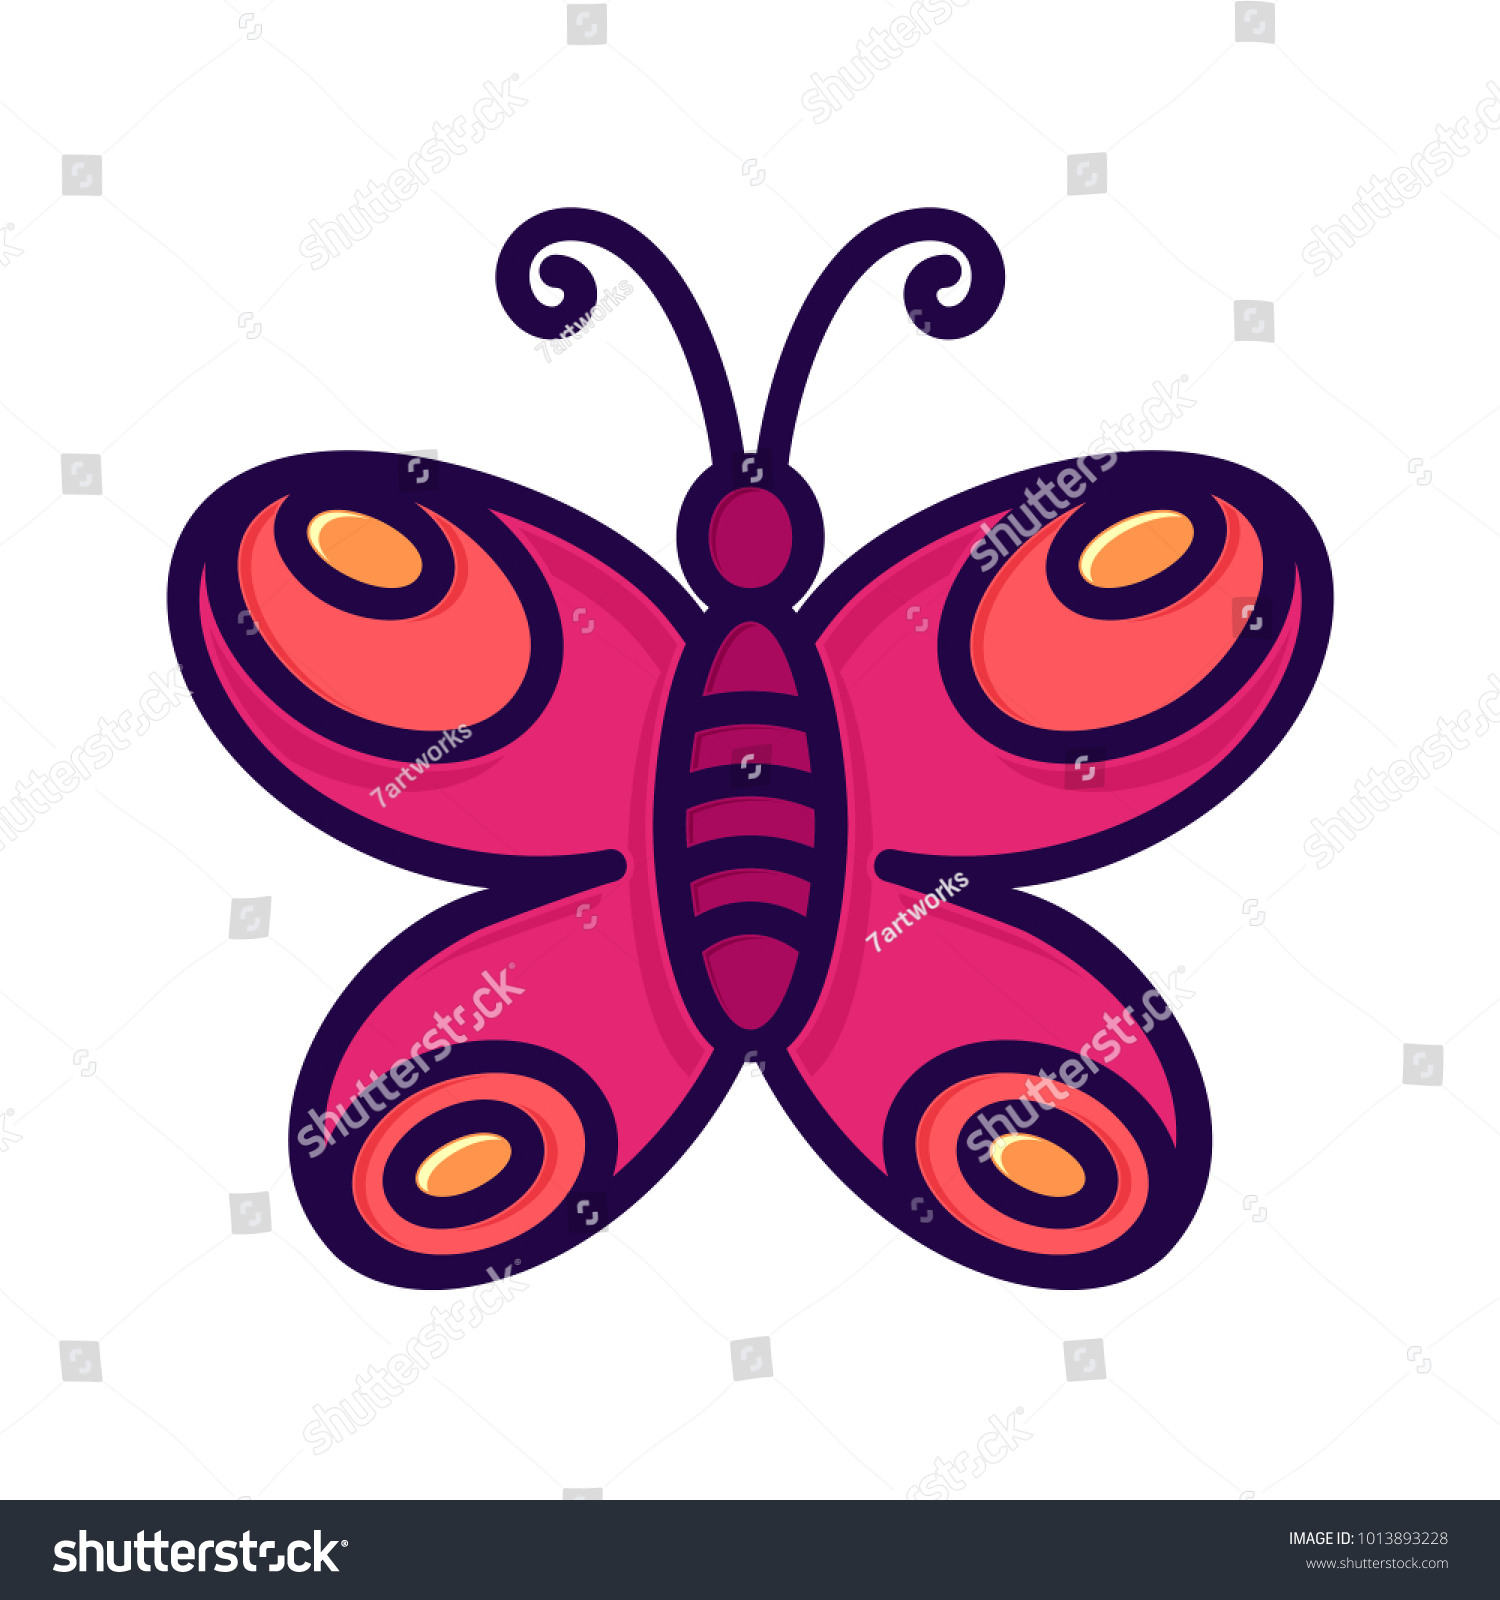 Cute Butterfly Pink Red Purple Drawing Stock Vector Royalty Free Orange Themed Circuit Board Clipart Illustration Lineart Isolated Design